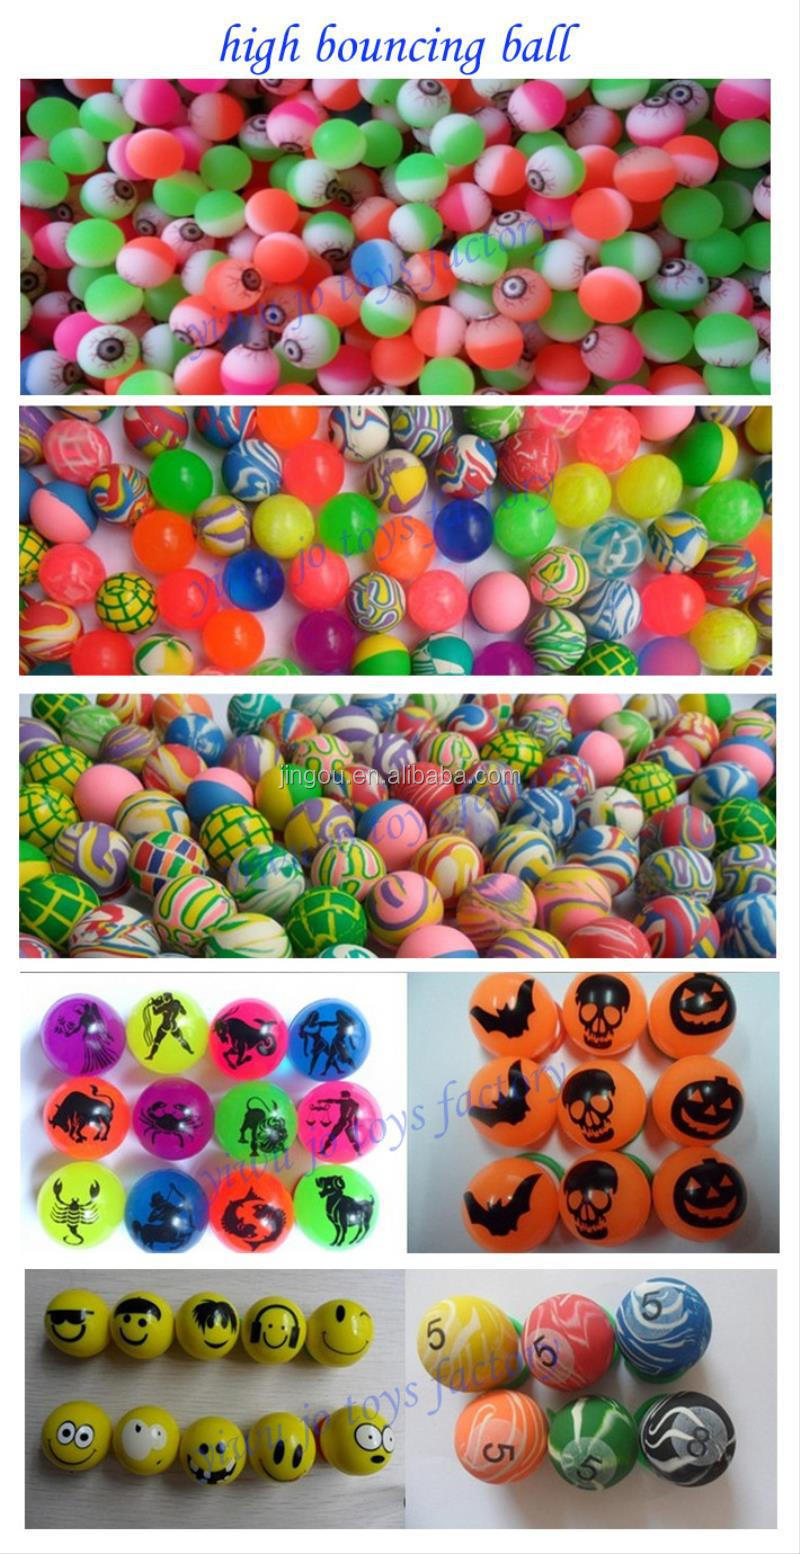 2016 Best Selling Vending Machine 27mm Rubber Bouncy Ball